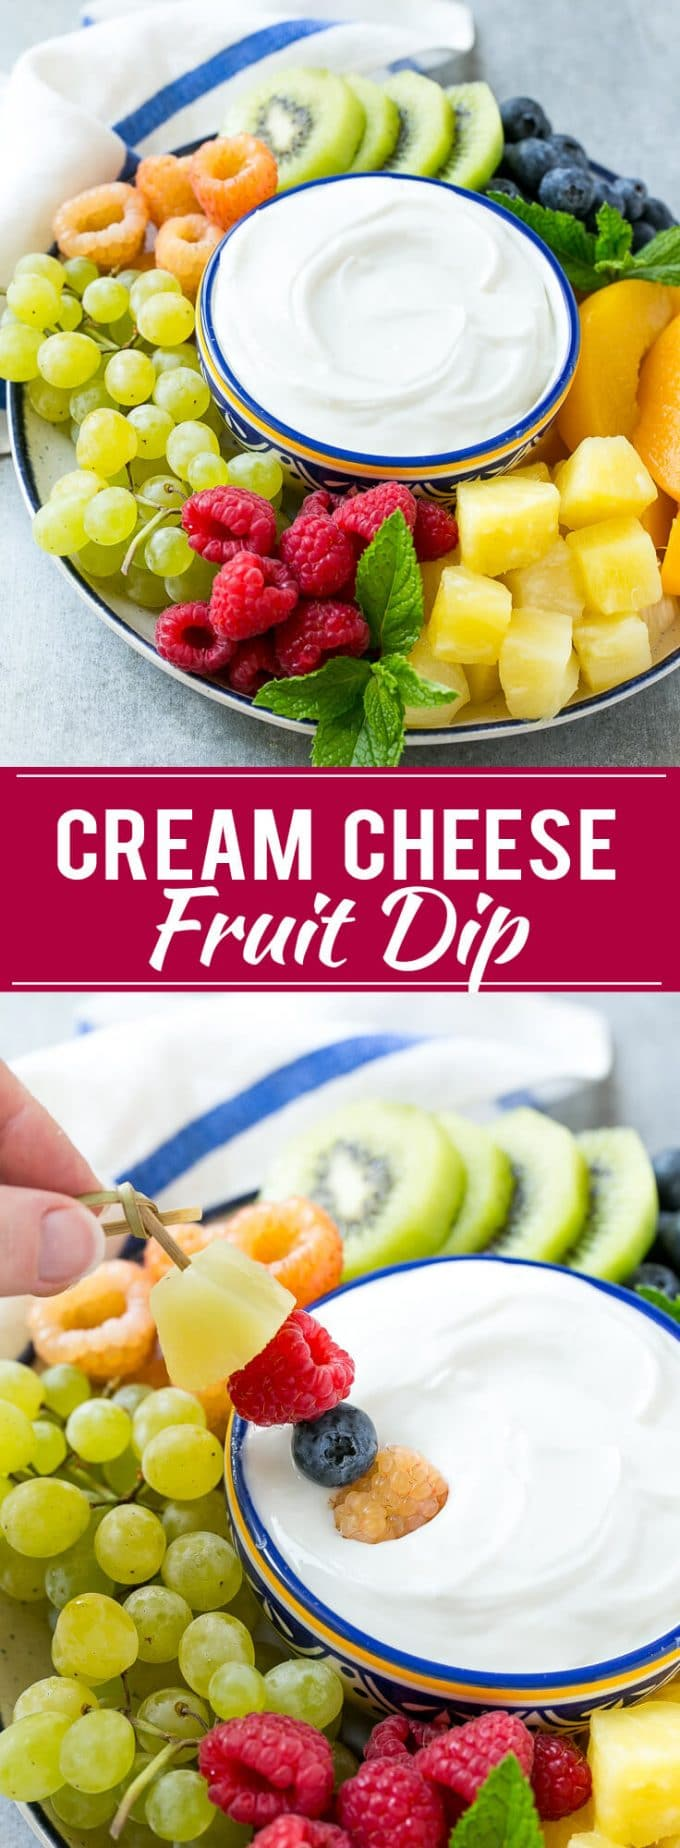 homemade fruit snacks fruit dip cream cheese